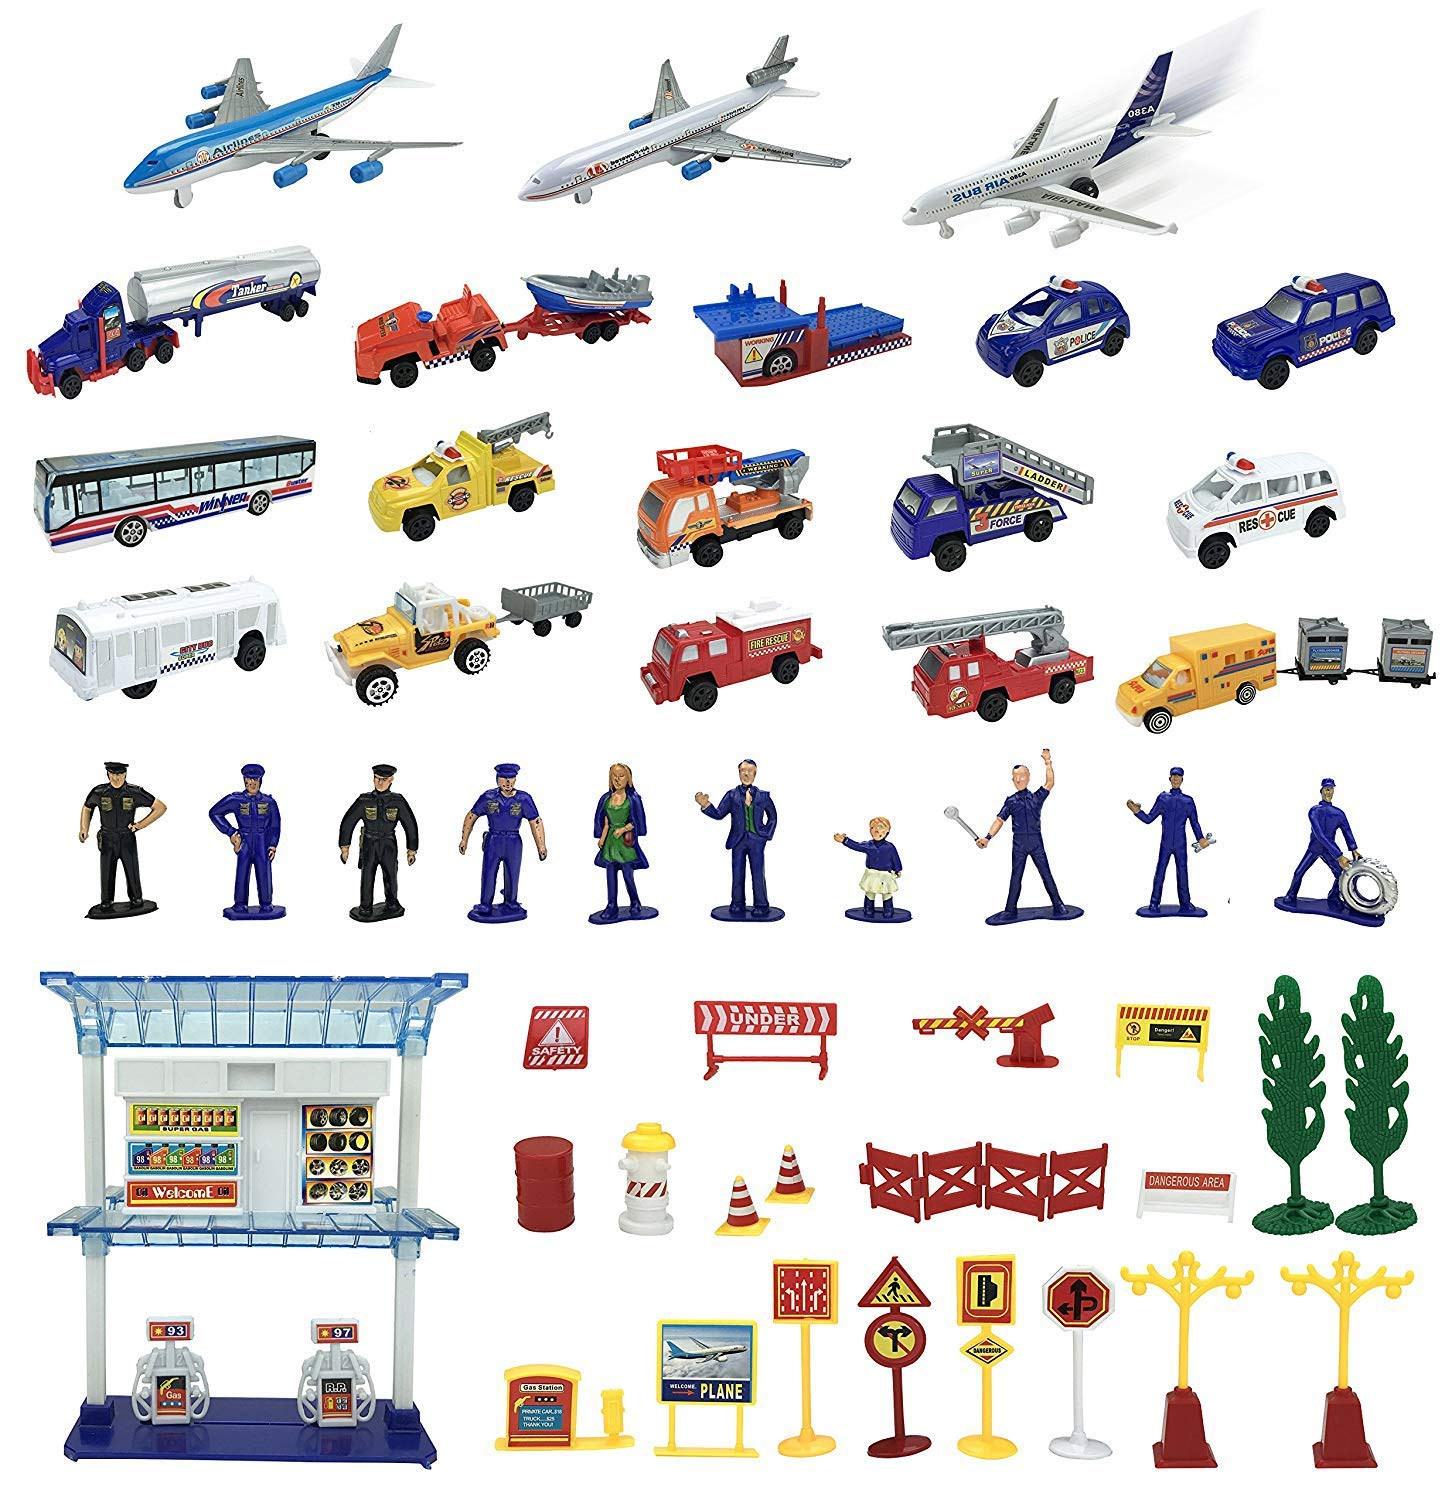 57 Piece Airport Play Set, Airplanes, Vehicles, Police Figures, Workers, And Many More Accessories by